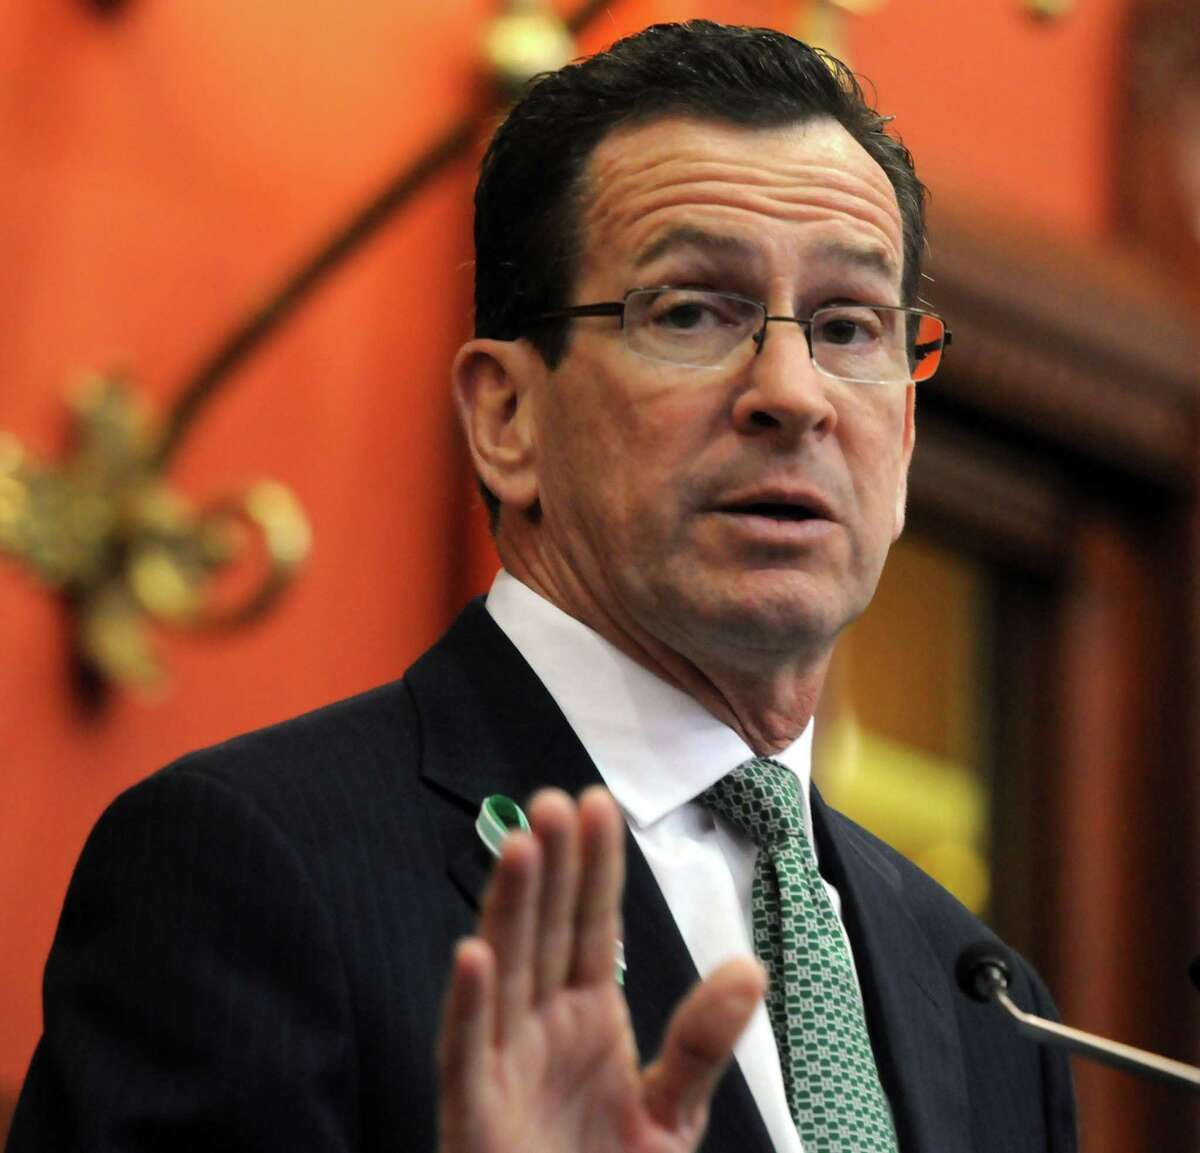 """""""In the short run, our hope and expectation was that this (loan) would stabilize the workforce and the numbers in Stamford,"""" Dannel P. Malloy, a Democrat who served as governor from 2011 to 2019 and is now chancellor of the University of Maine system, said in an interview. """"What we now know is things got worse and worse for the company."""""""